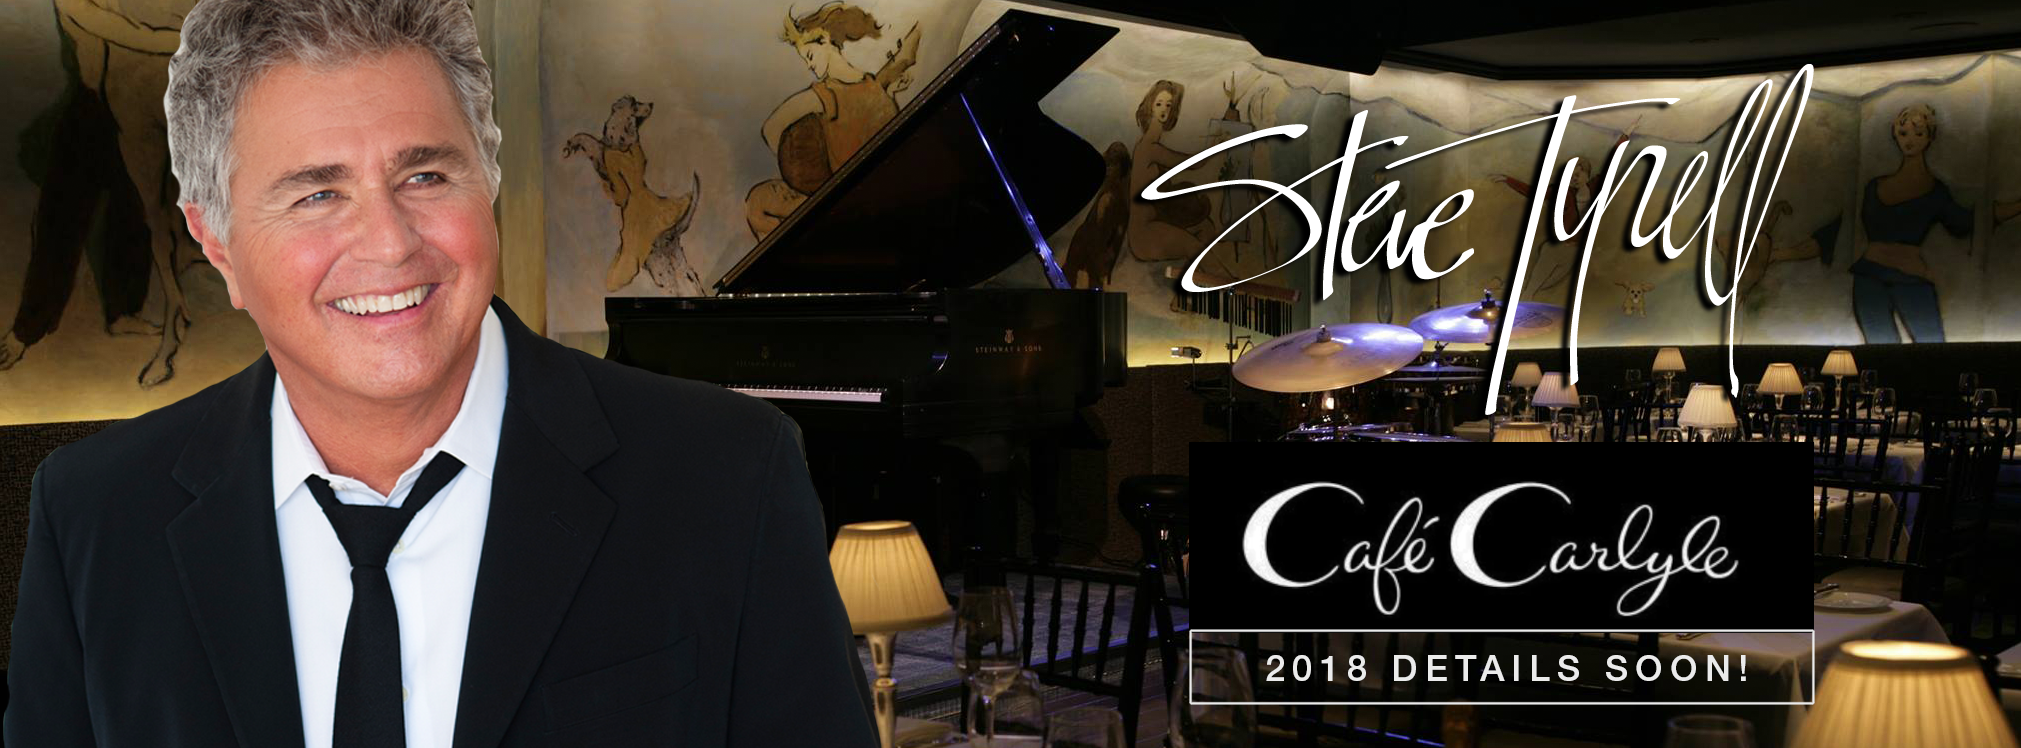 Steve Tyrell at The Cafe Carlyle 2018